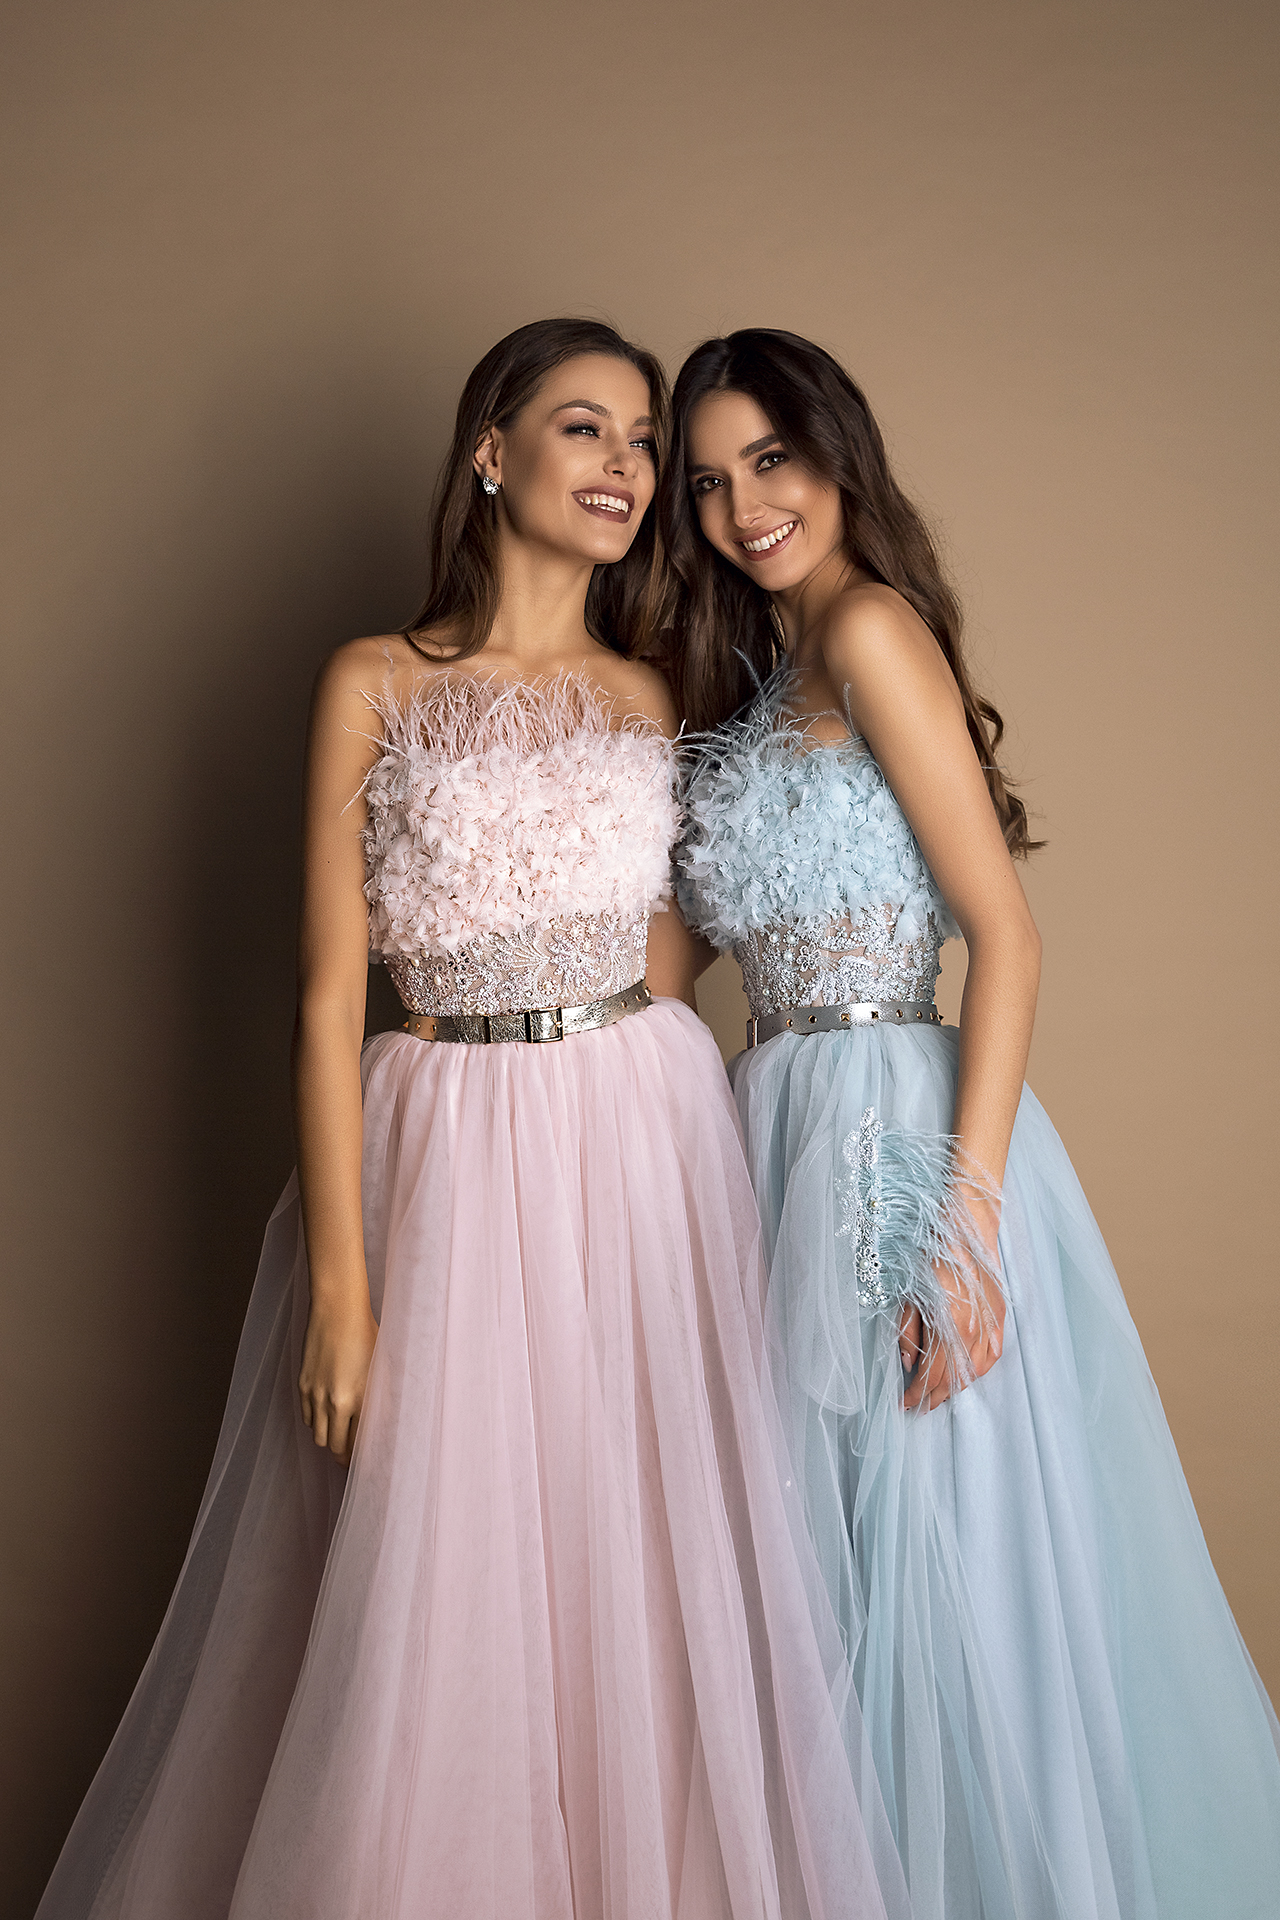 Evening Dresses 1543 Silhouette  A Line  Color  Pink  Blue  Neckline  Straight  Sleeves  Sleeveless  Train  No train - foto 2